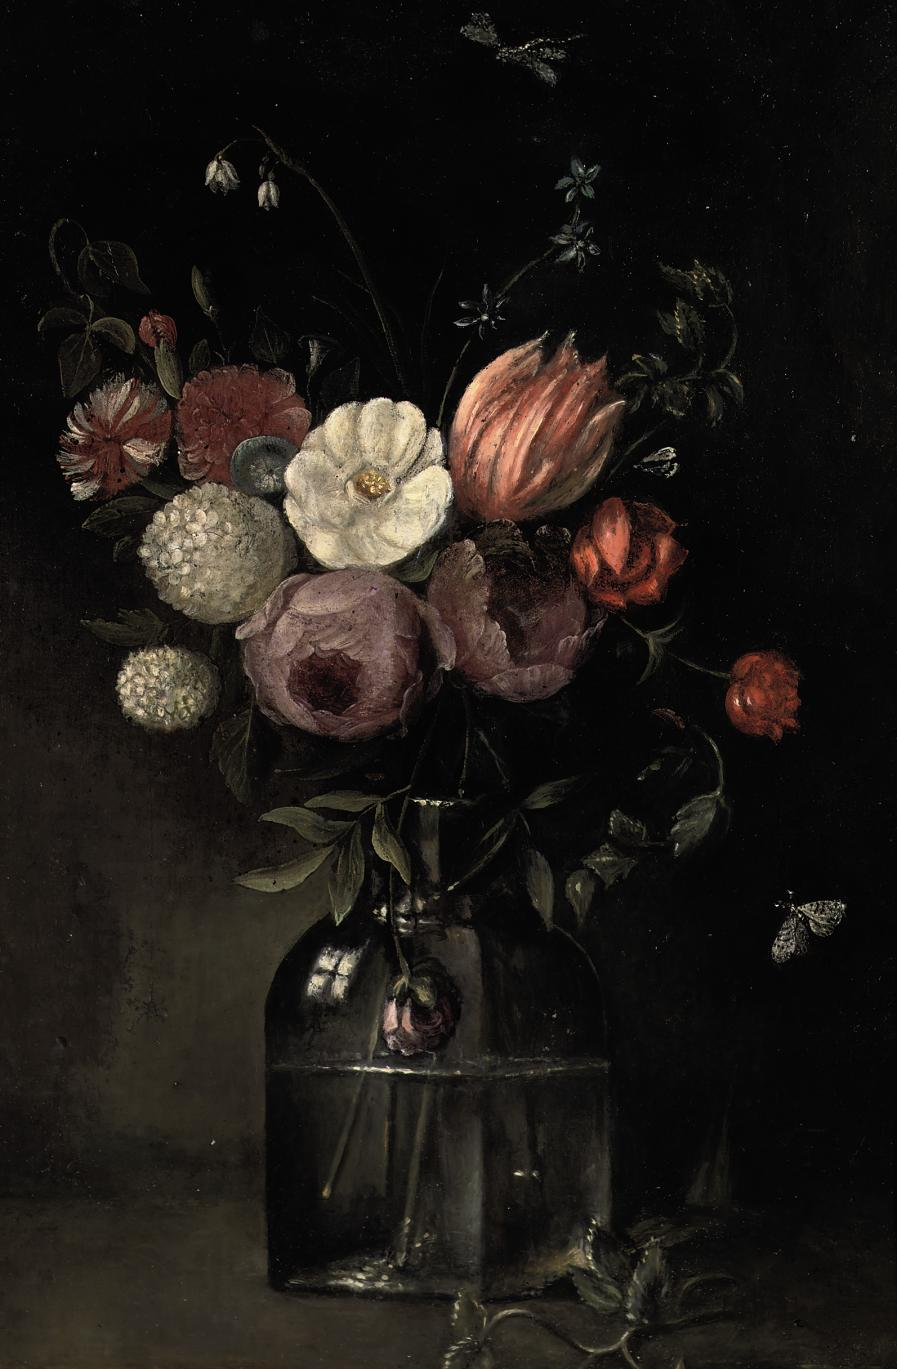 Roses, tulips, a snowball, carnations, Loddon Lilies and an anemone in a glass vase on a ledge